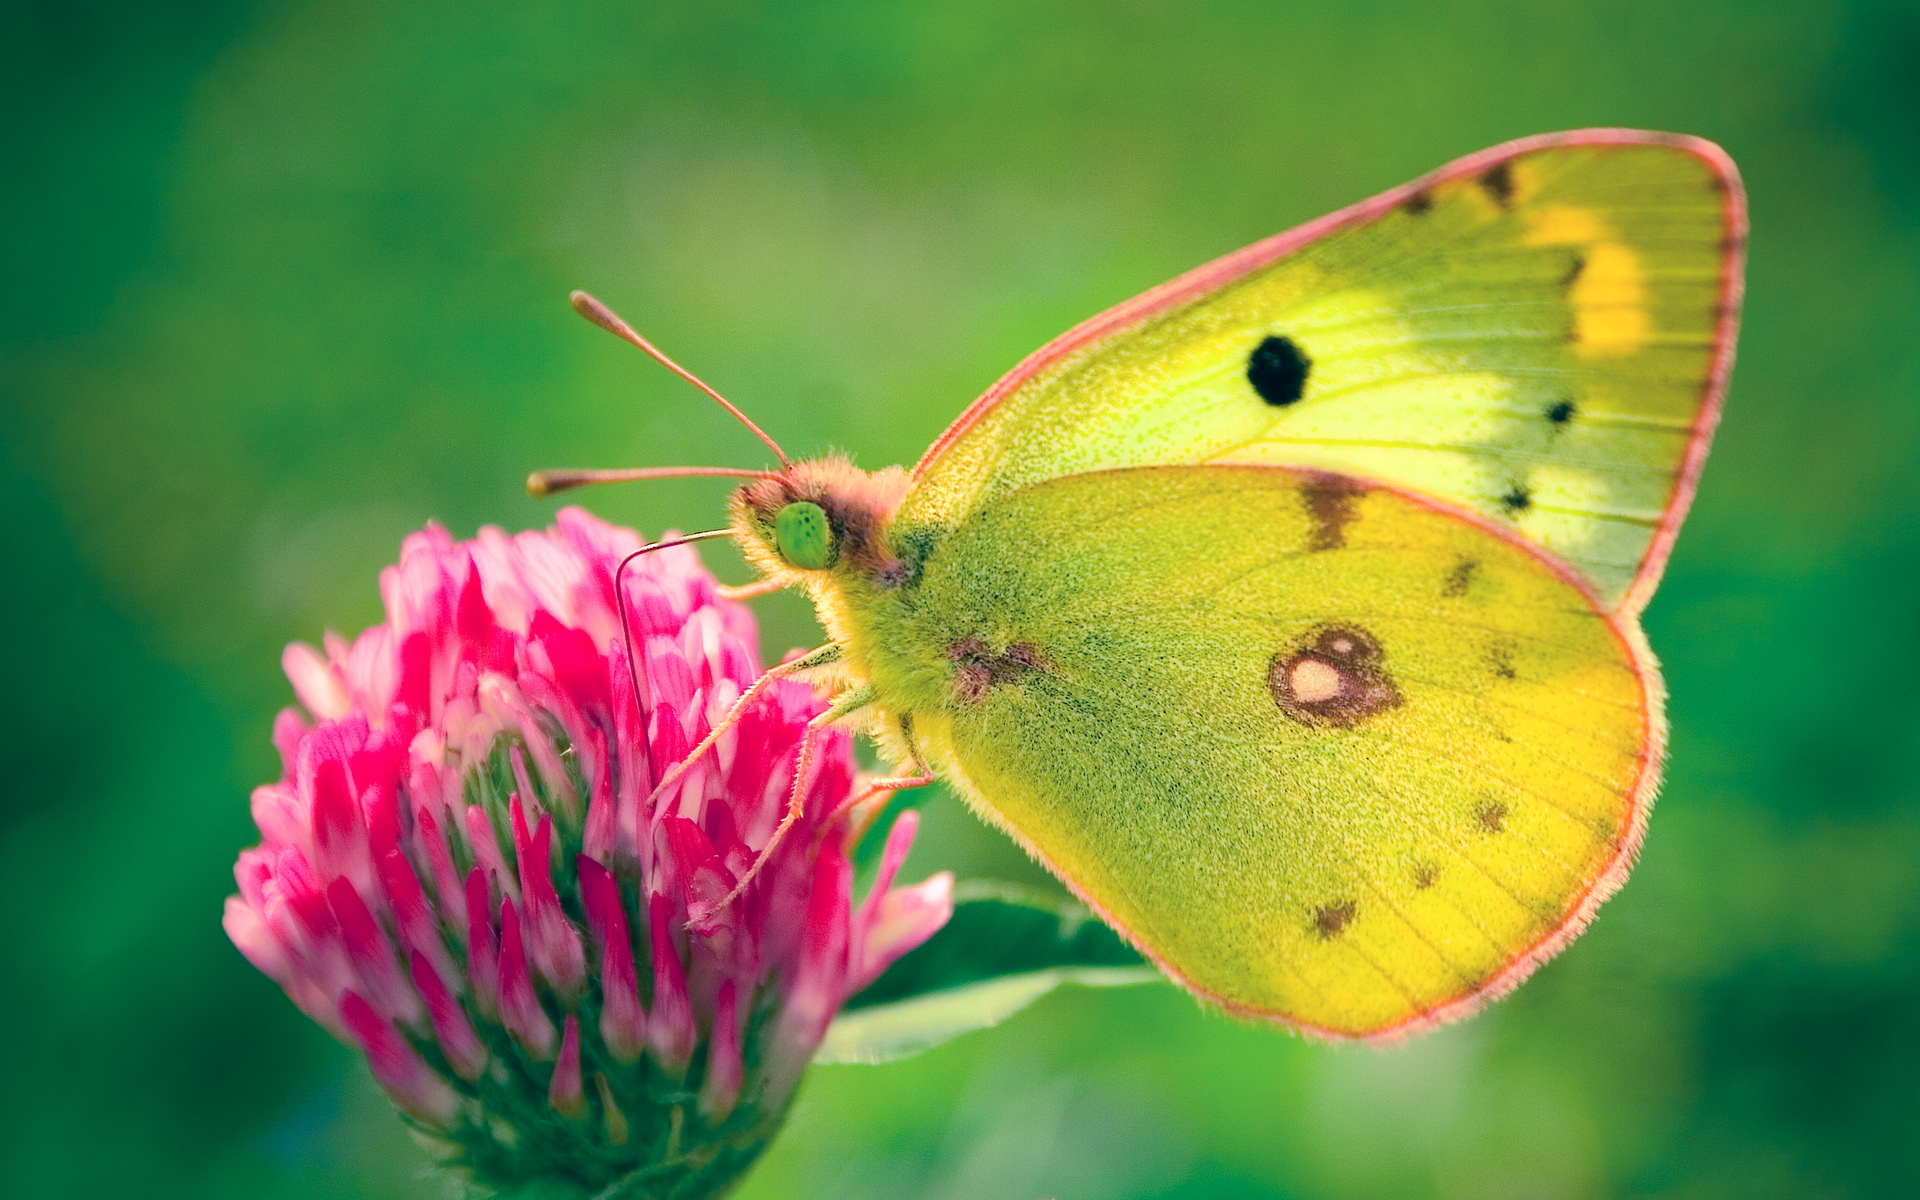 Colias Hyale Butterfly Photo Wallpaper For Desktop